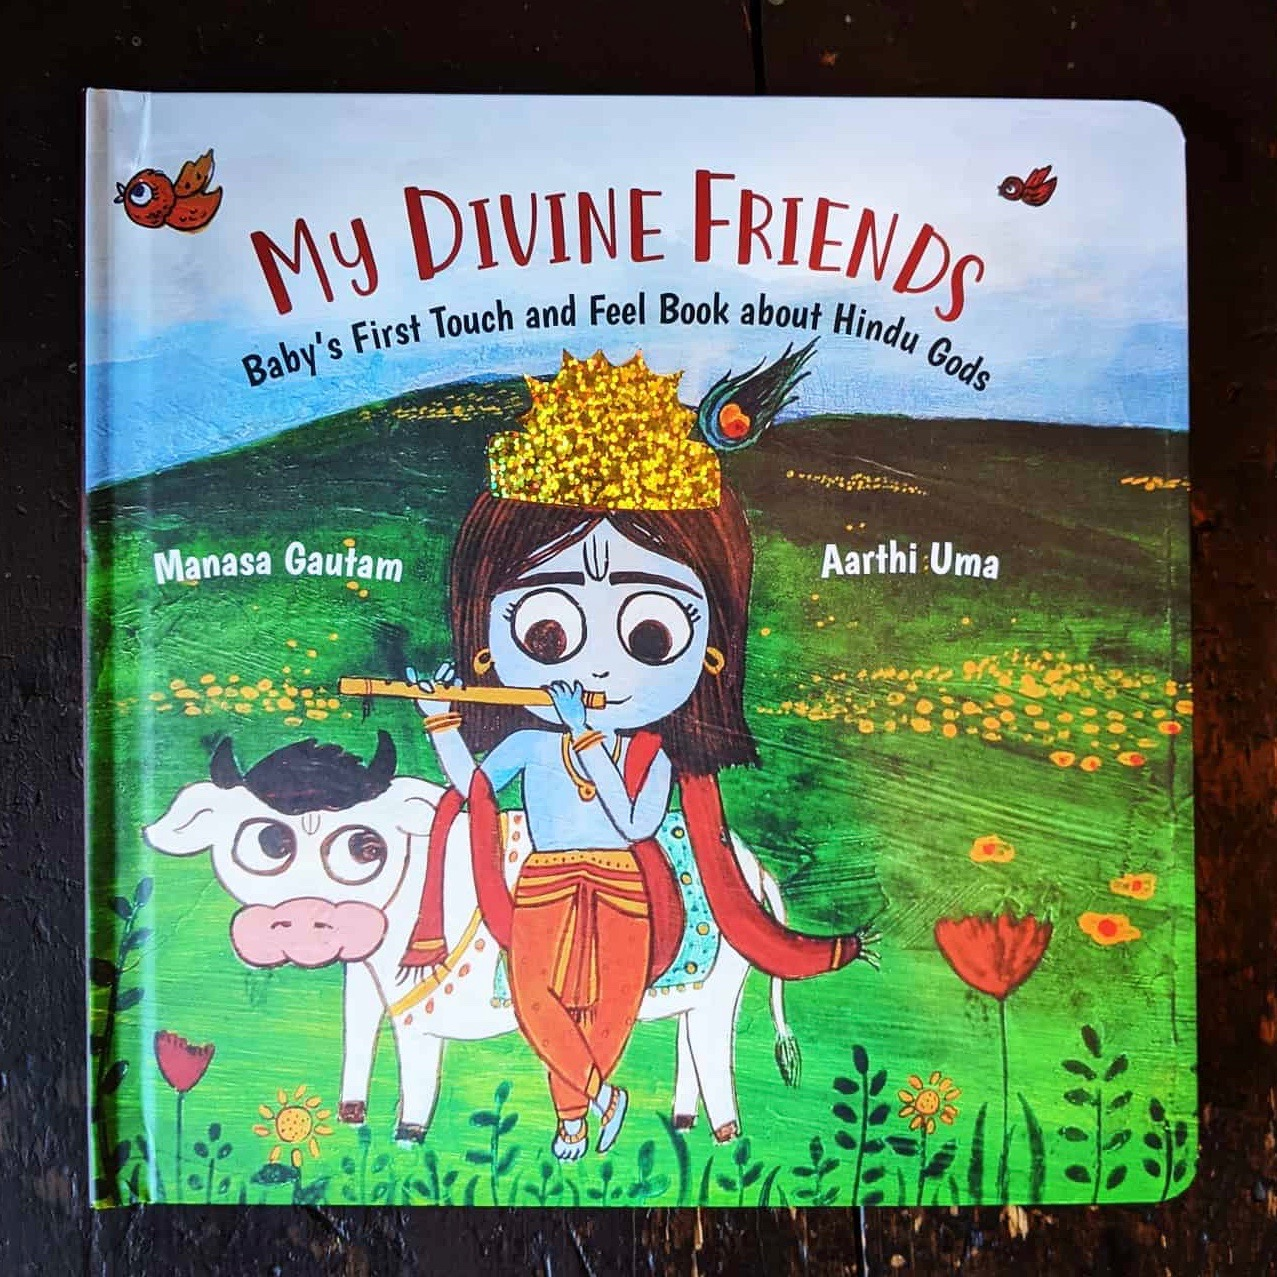 #MCBD2020 Book Review: My Divine Friends- Baby's First Touch and Feel Book about Hindu Gods